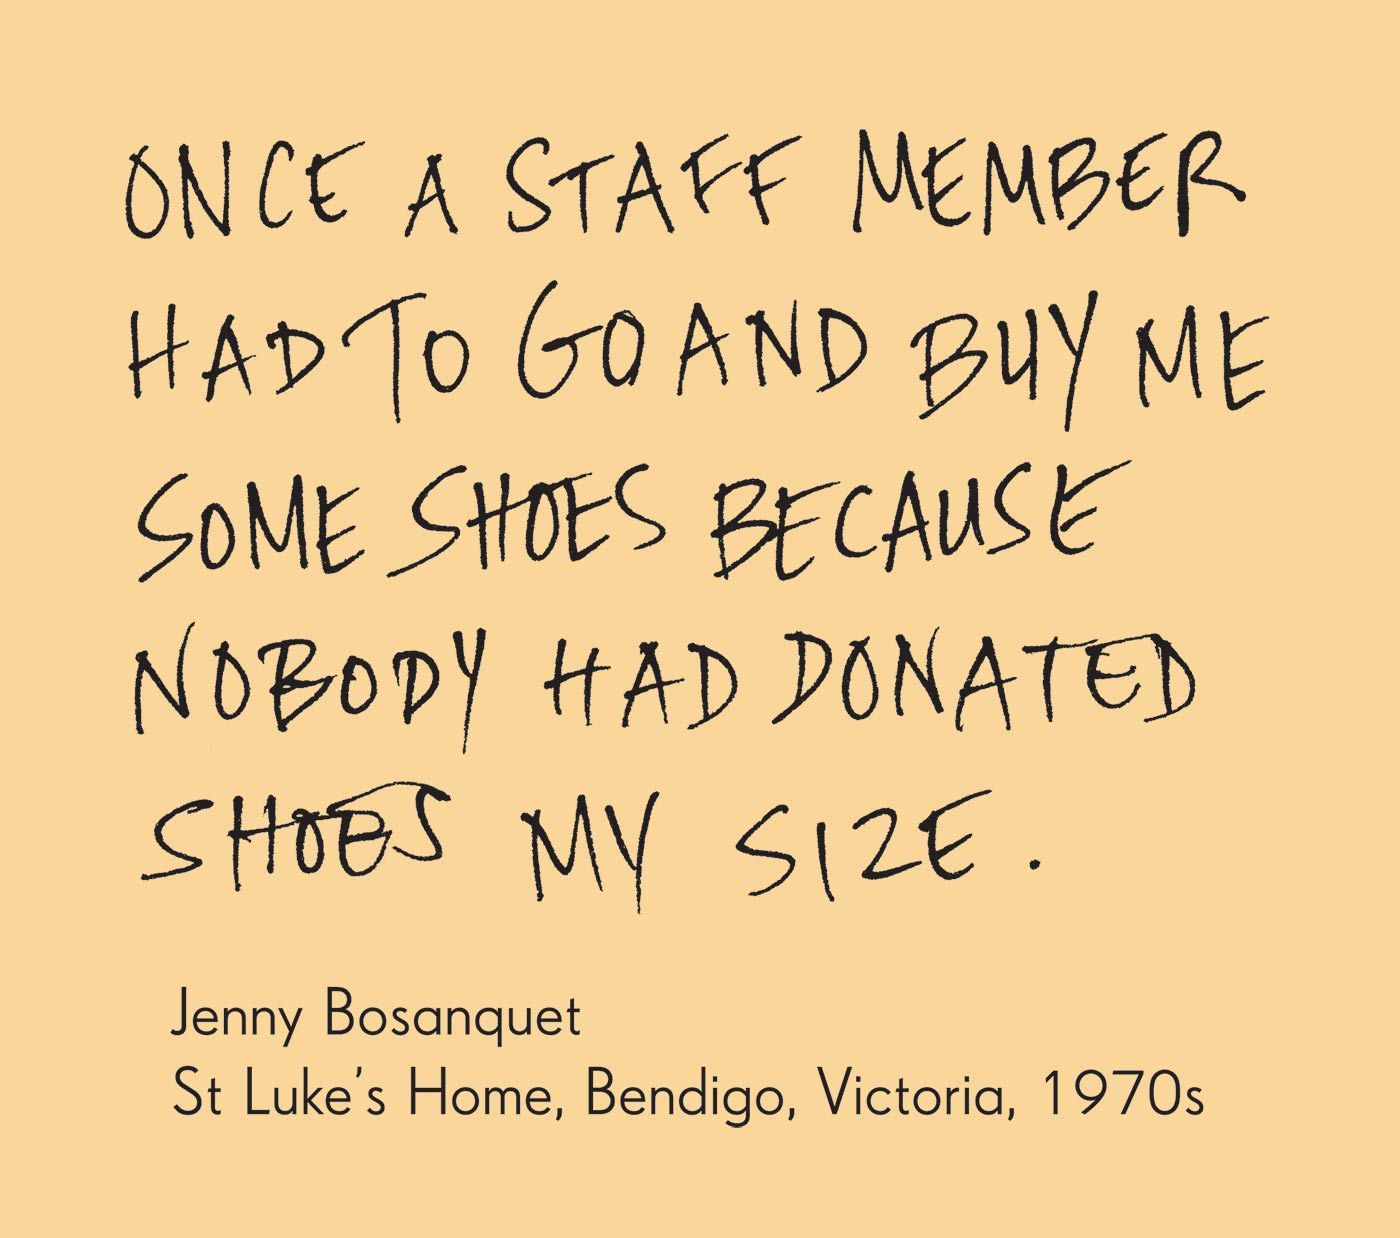 Exhibition graphic panel that reads: 'Once a staff member had to go and buy me some shoes because nobody had donated shoes my size', attributed to 'Jenny Bosanquet, St Luke's Home, Bendigo, Victoria, 1970s'. - click to view larger image